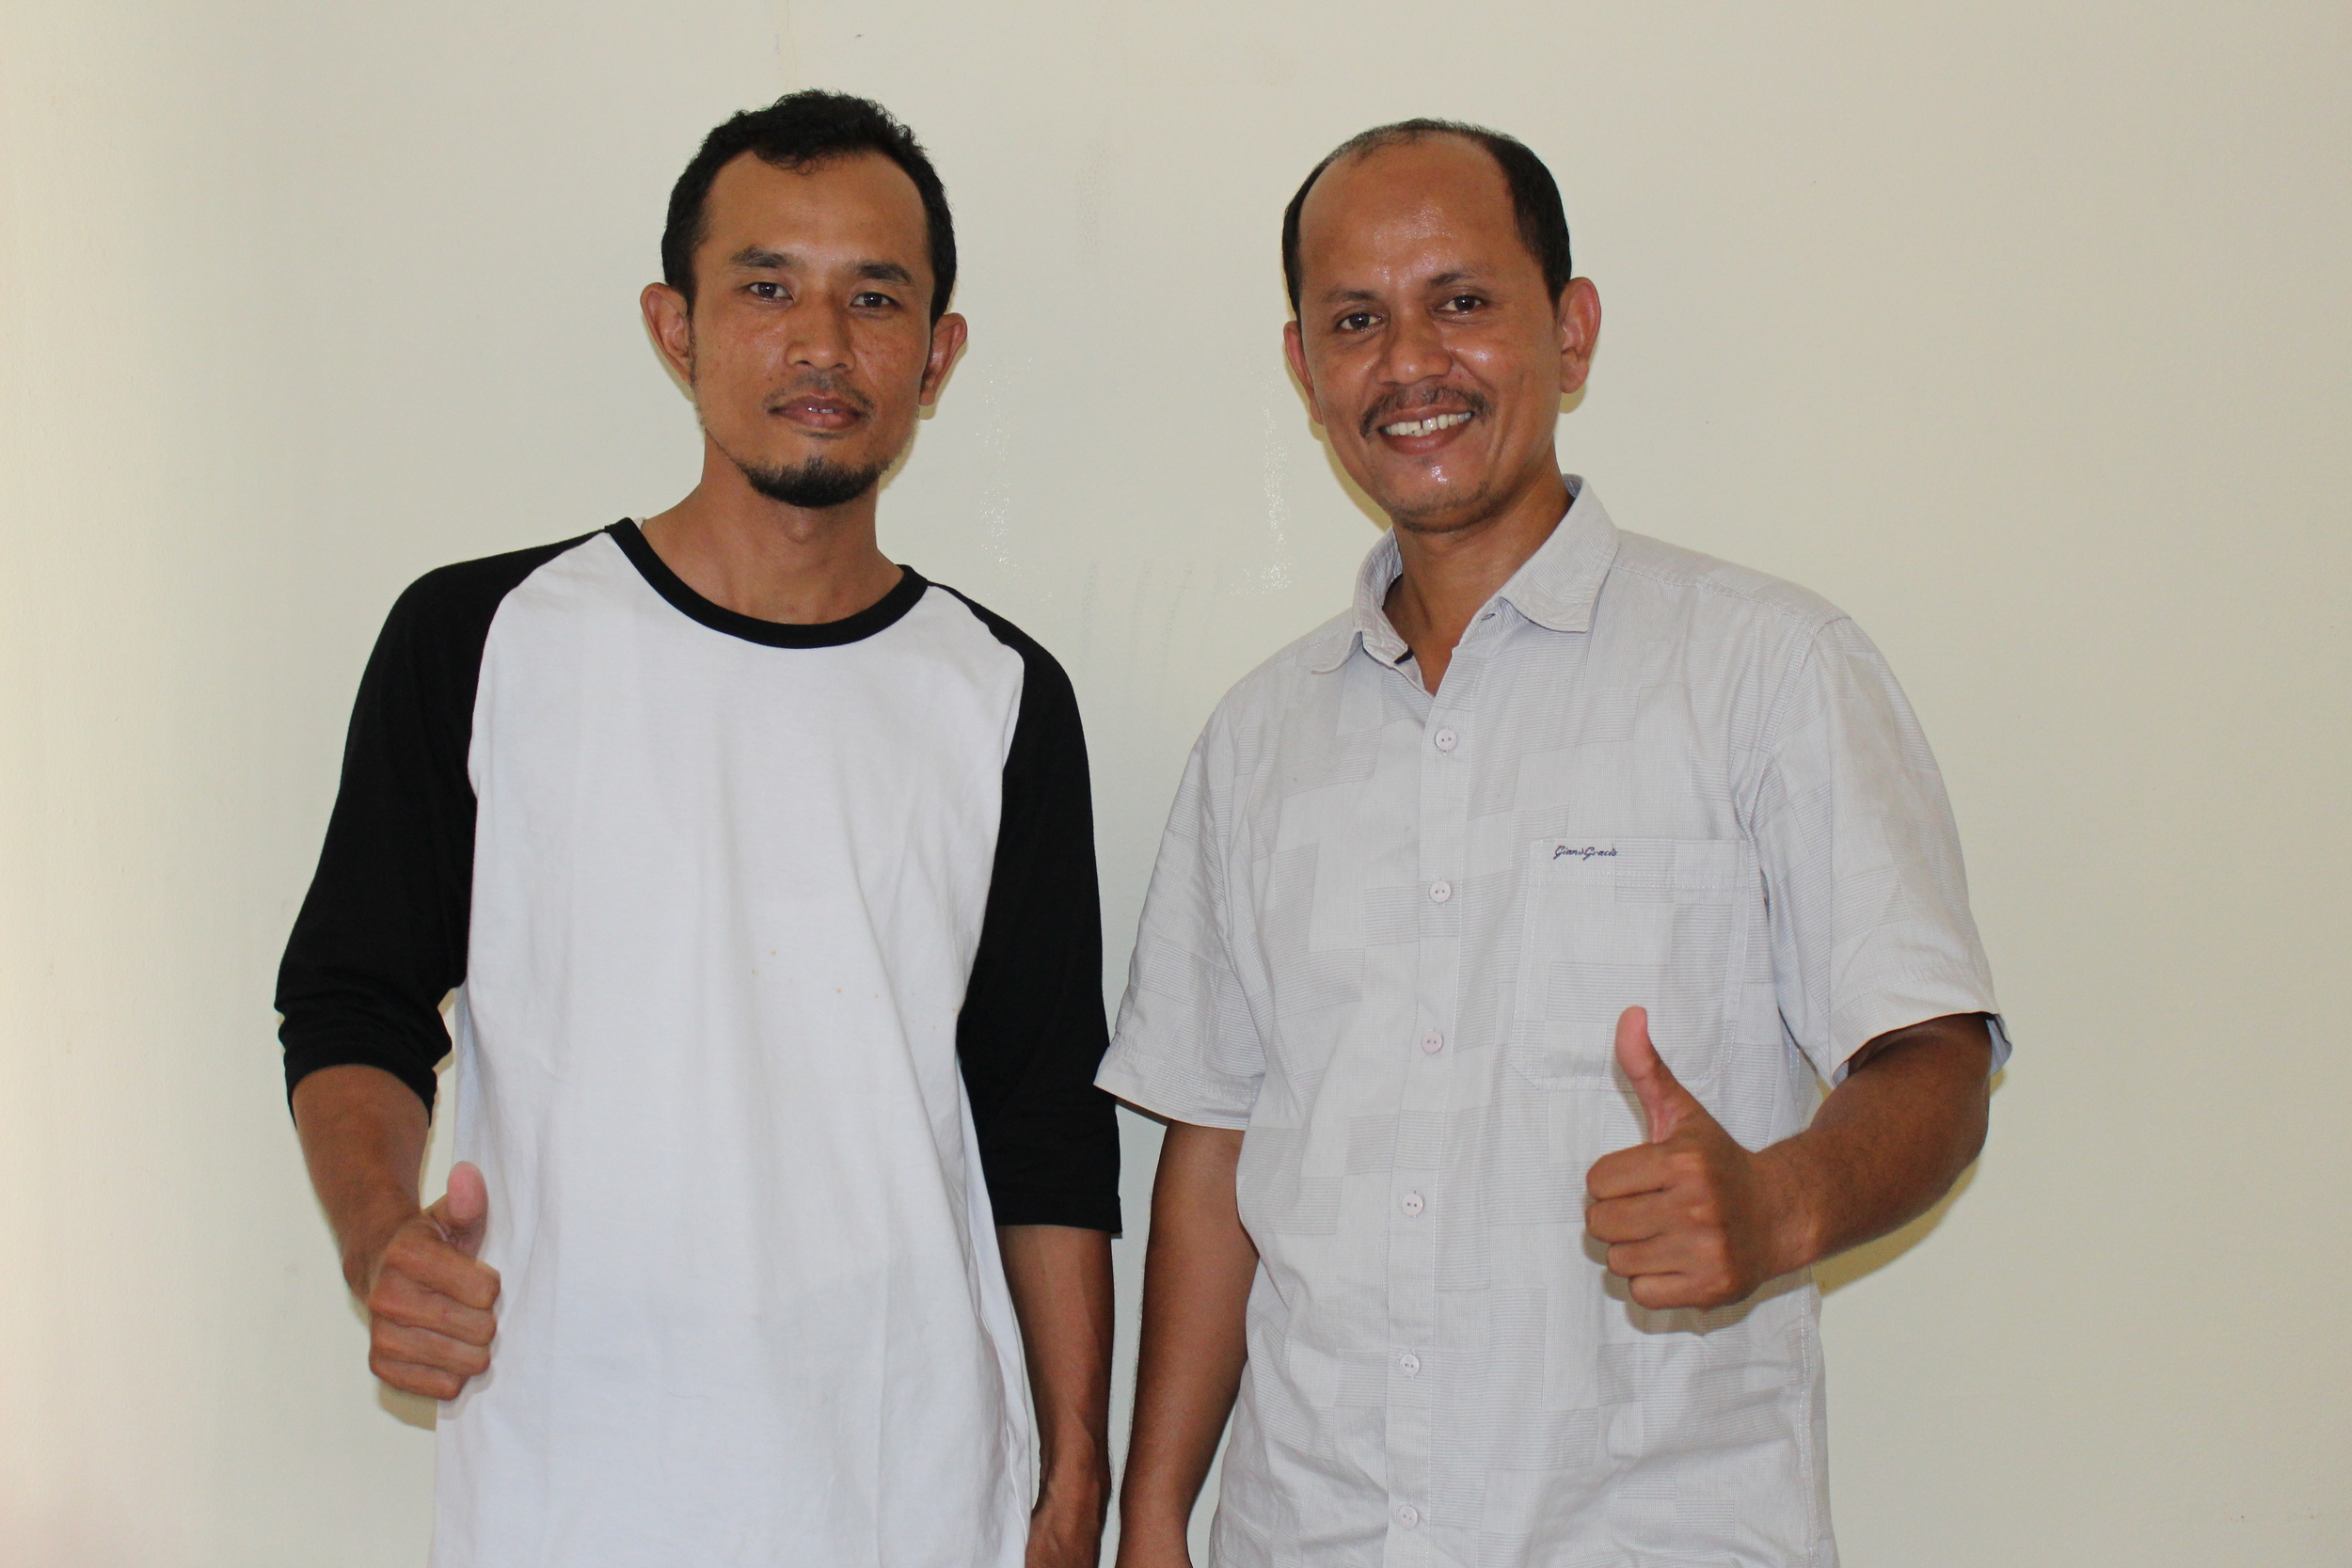 Our Communal Business Group Team (from left to right): Pak Adrian, Pak Hasbi (Not Pictured: Pak Rusli, Pak Arie, Kak Indah)